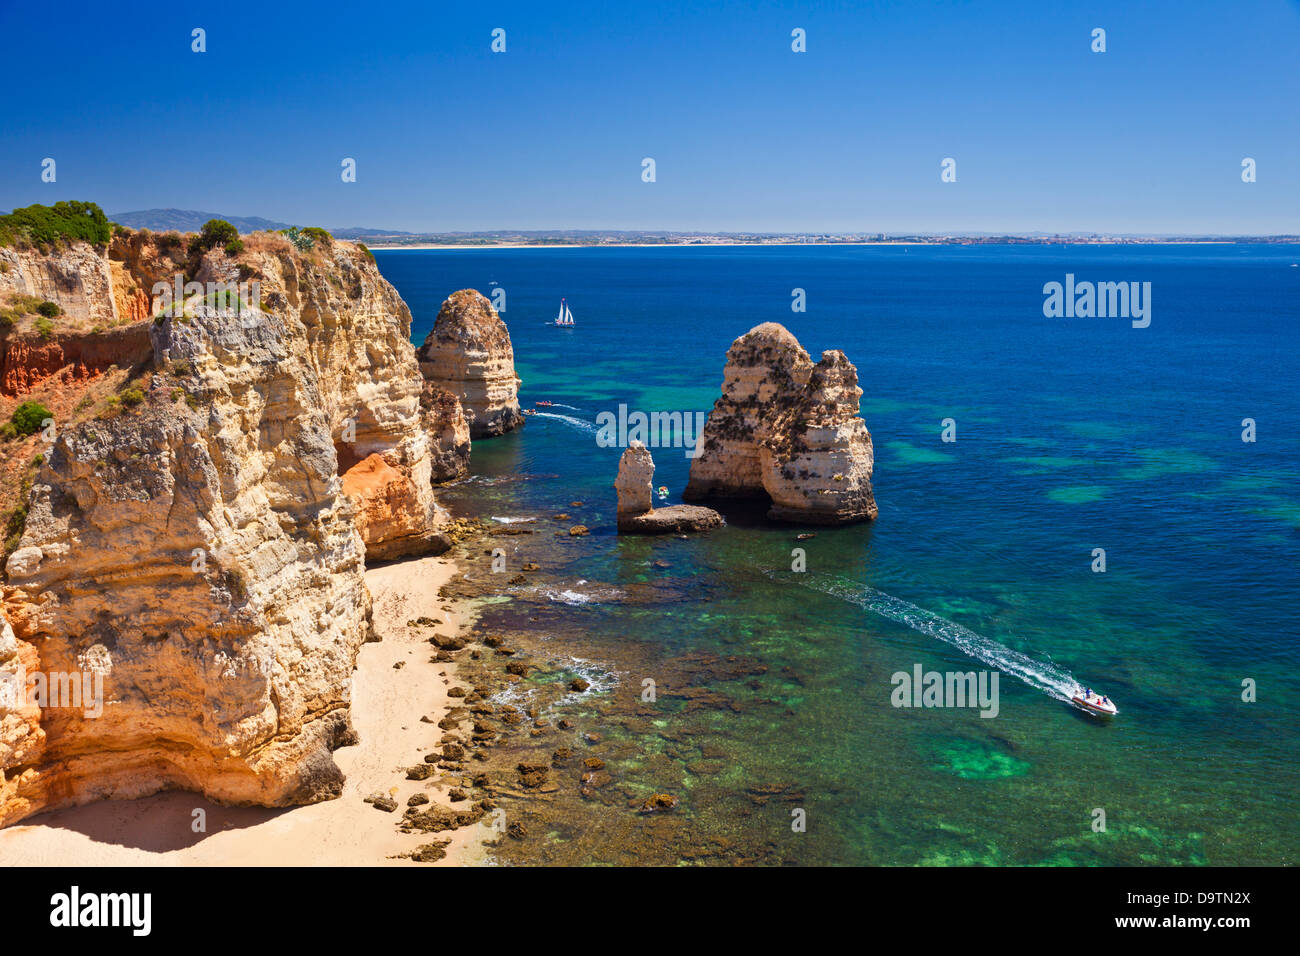 Ponta da Piedade Lagos Algarve Portugal EU Europe Stock Photo